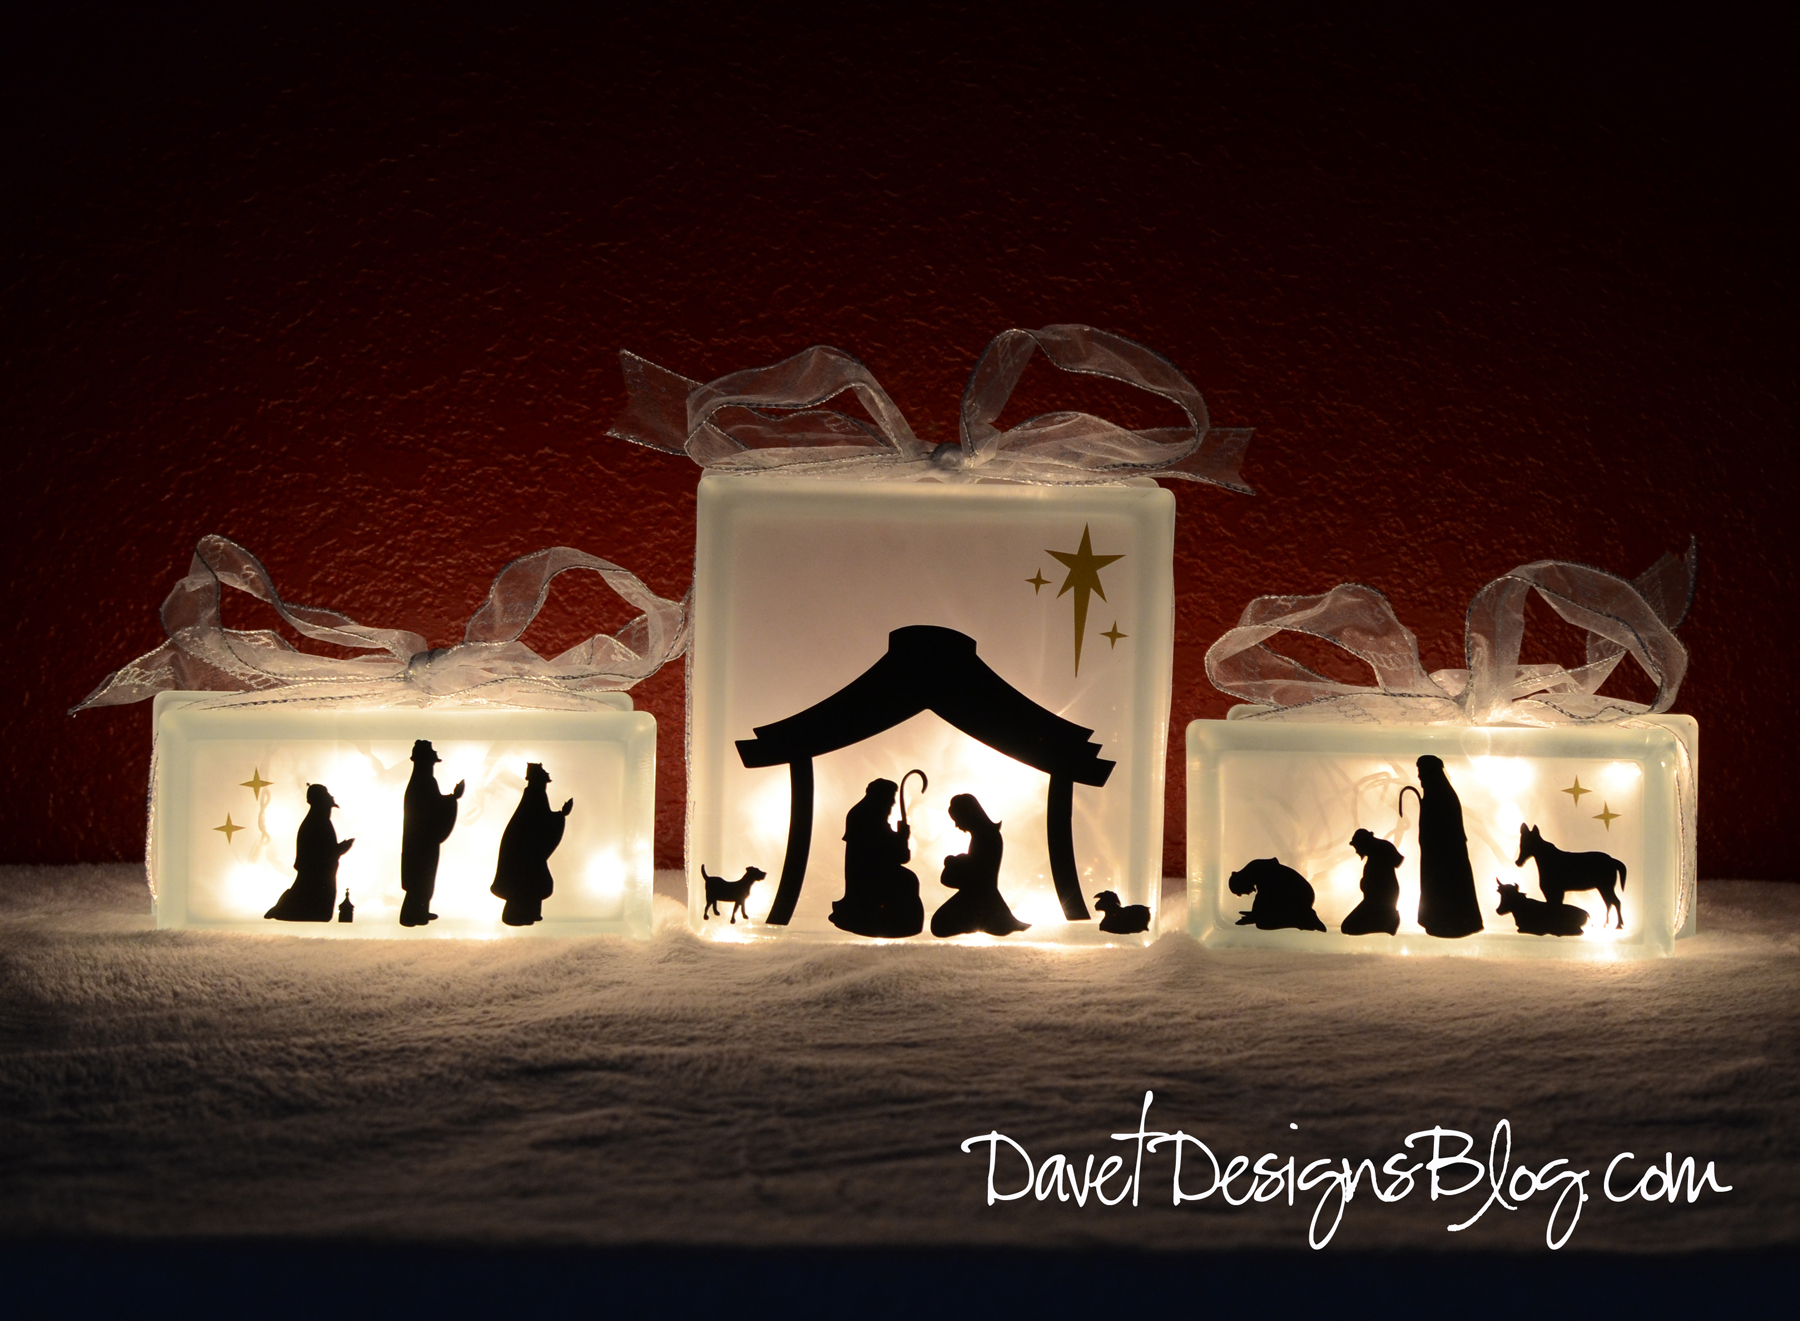 Craft Ideas And More From Davet Designs Kraftyblok